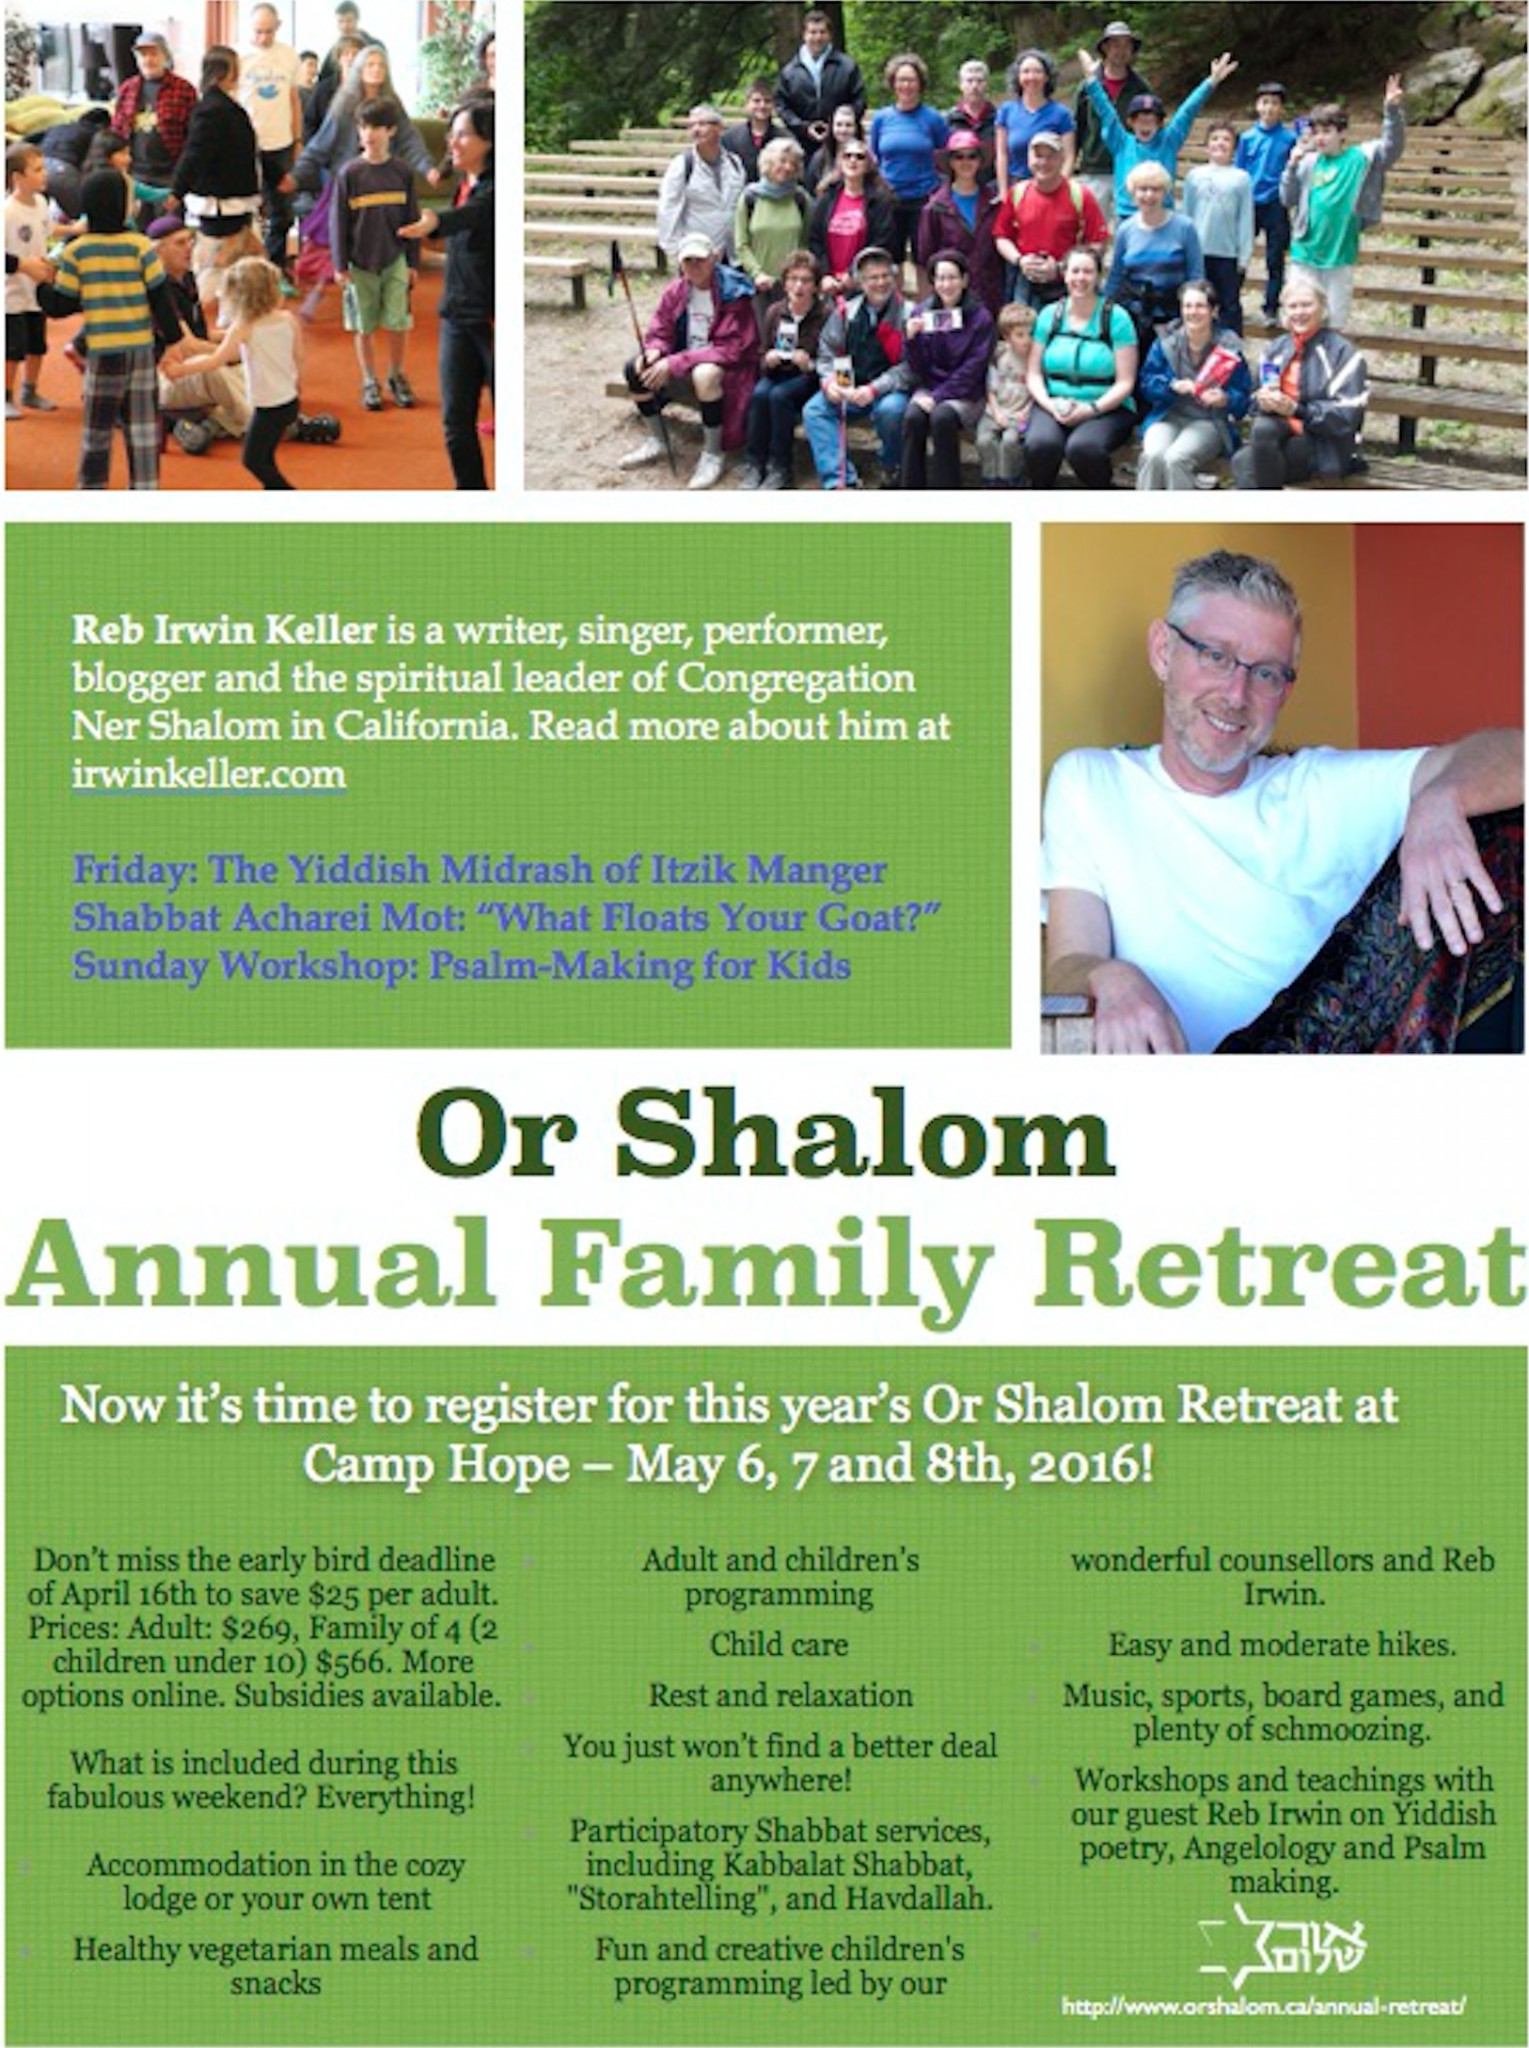 Save Now on Early Bird Retreat Registration!   Or Shalom Synagogue